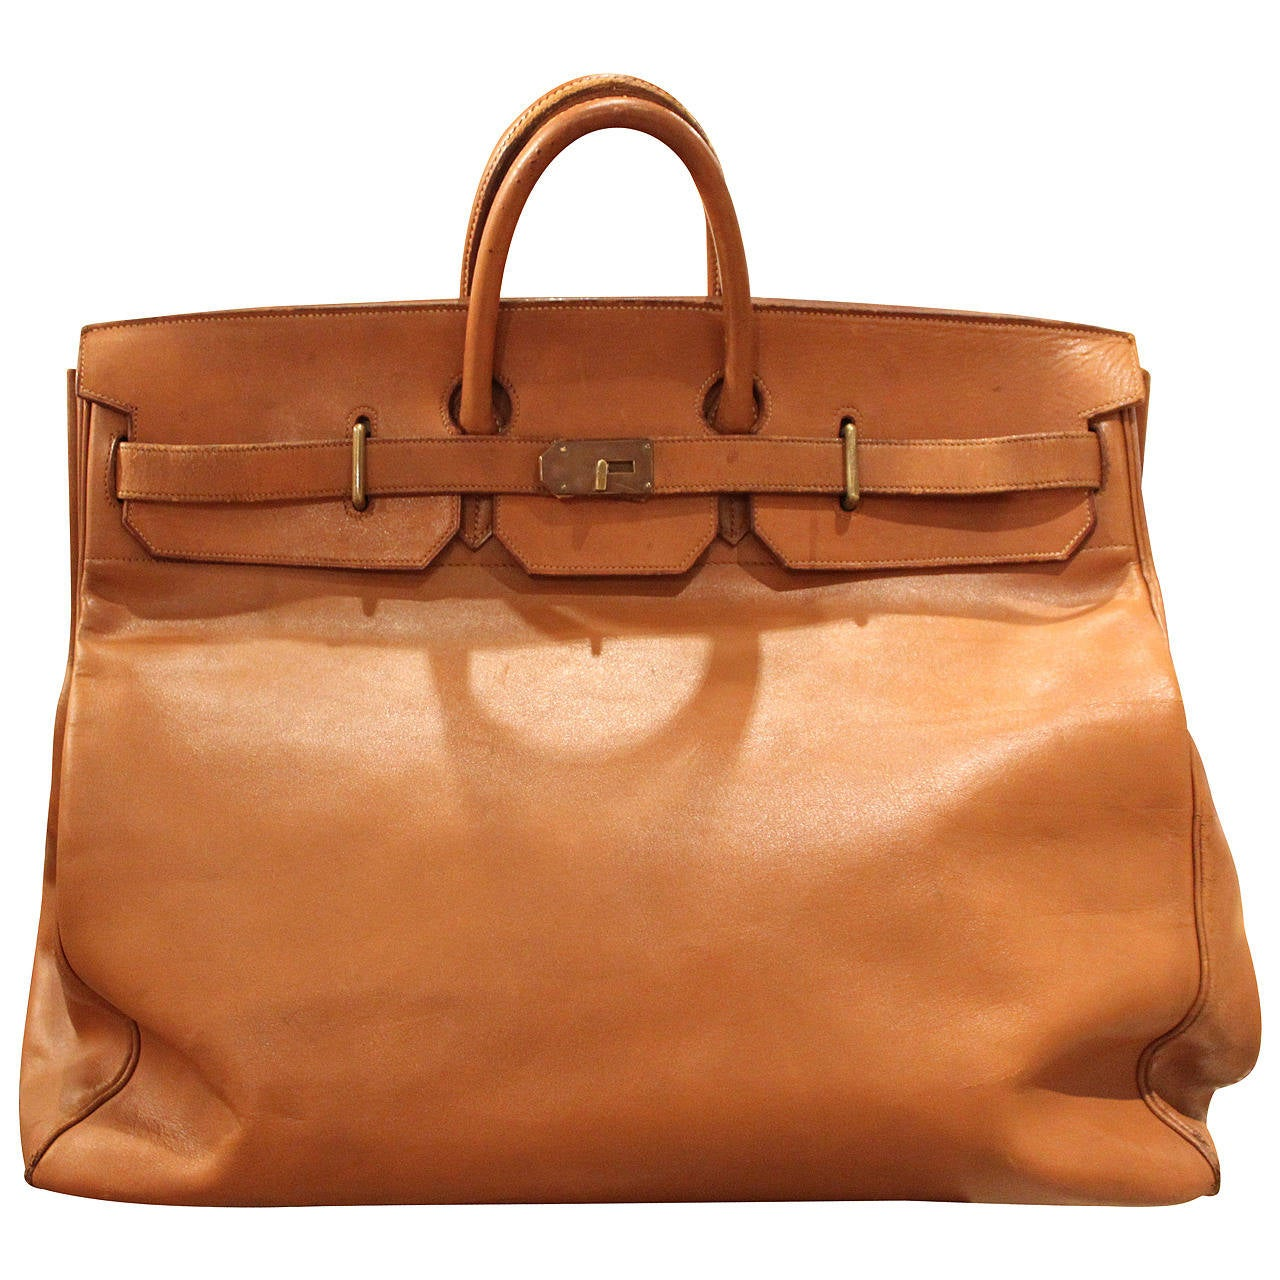 53a8ae4e15 Hermes HAC Travel Bag at 1stdibs